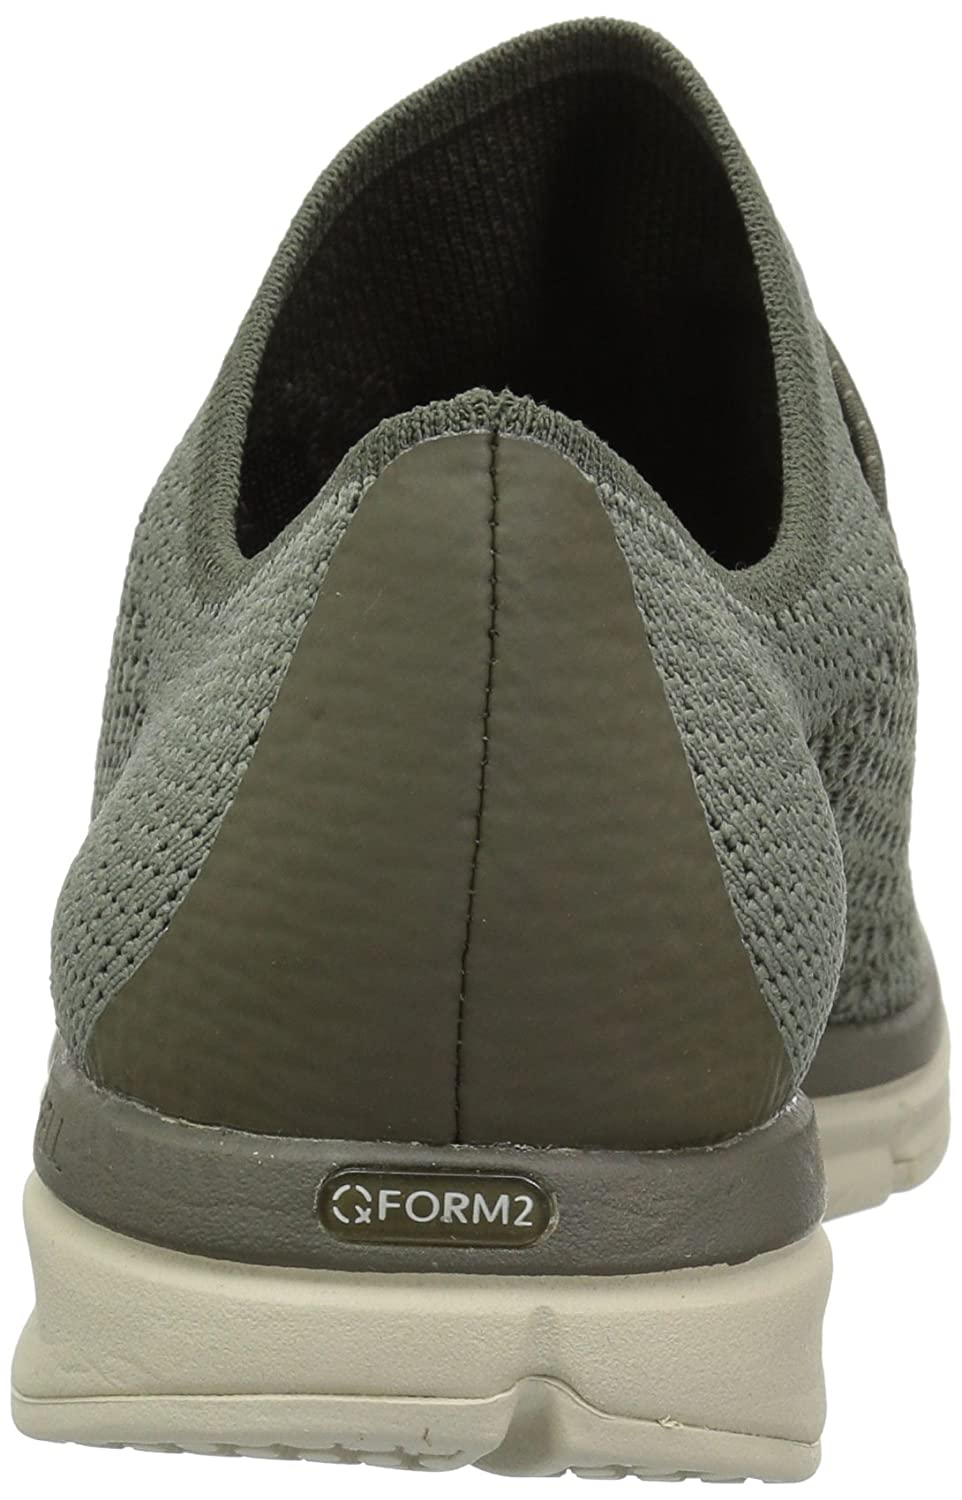 Merrell Women's Zoe Sojourn Lace Knit Q2 Sneaker B079DH5P44 5.5 B(M) US|Dusty Olive